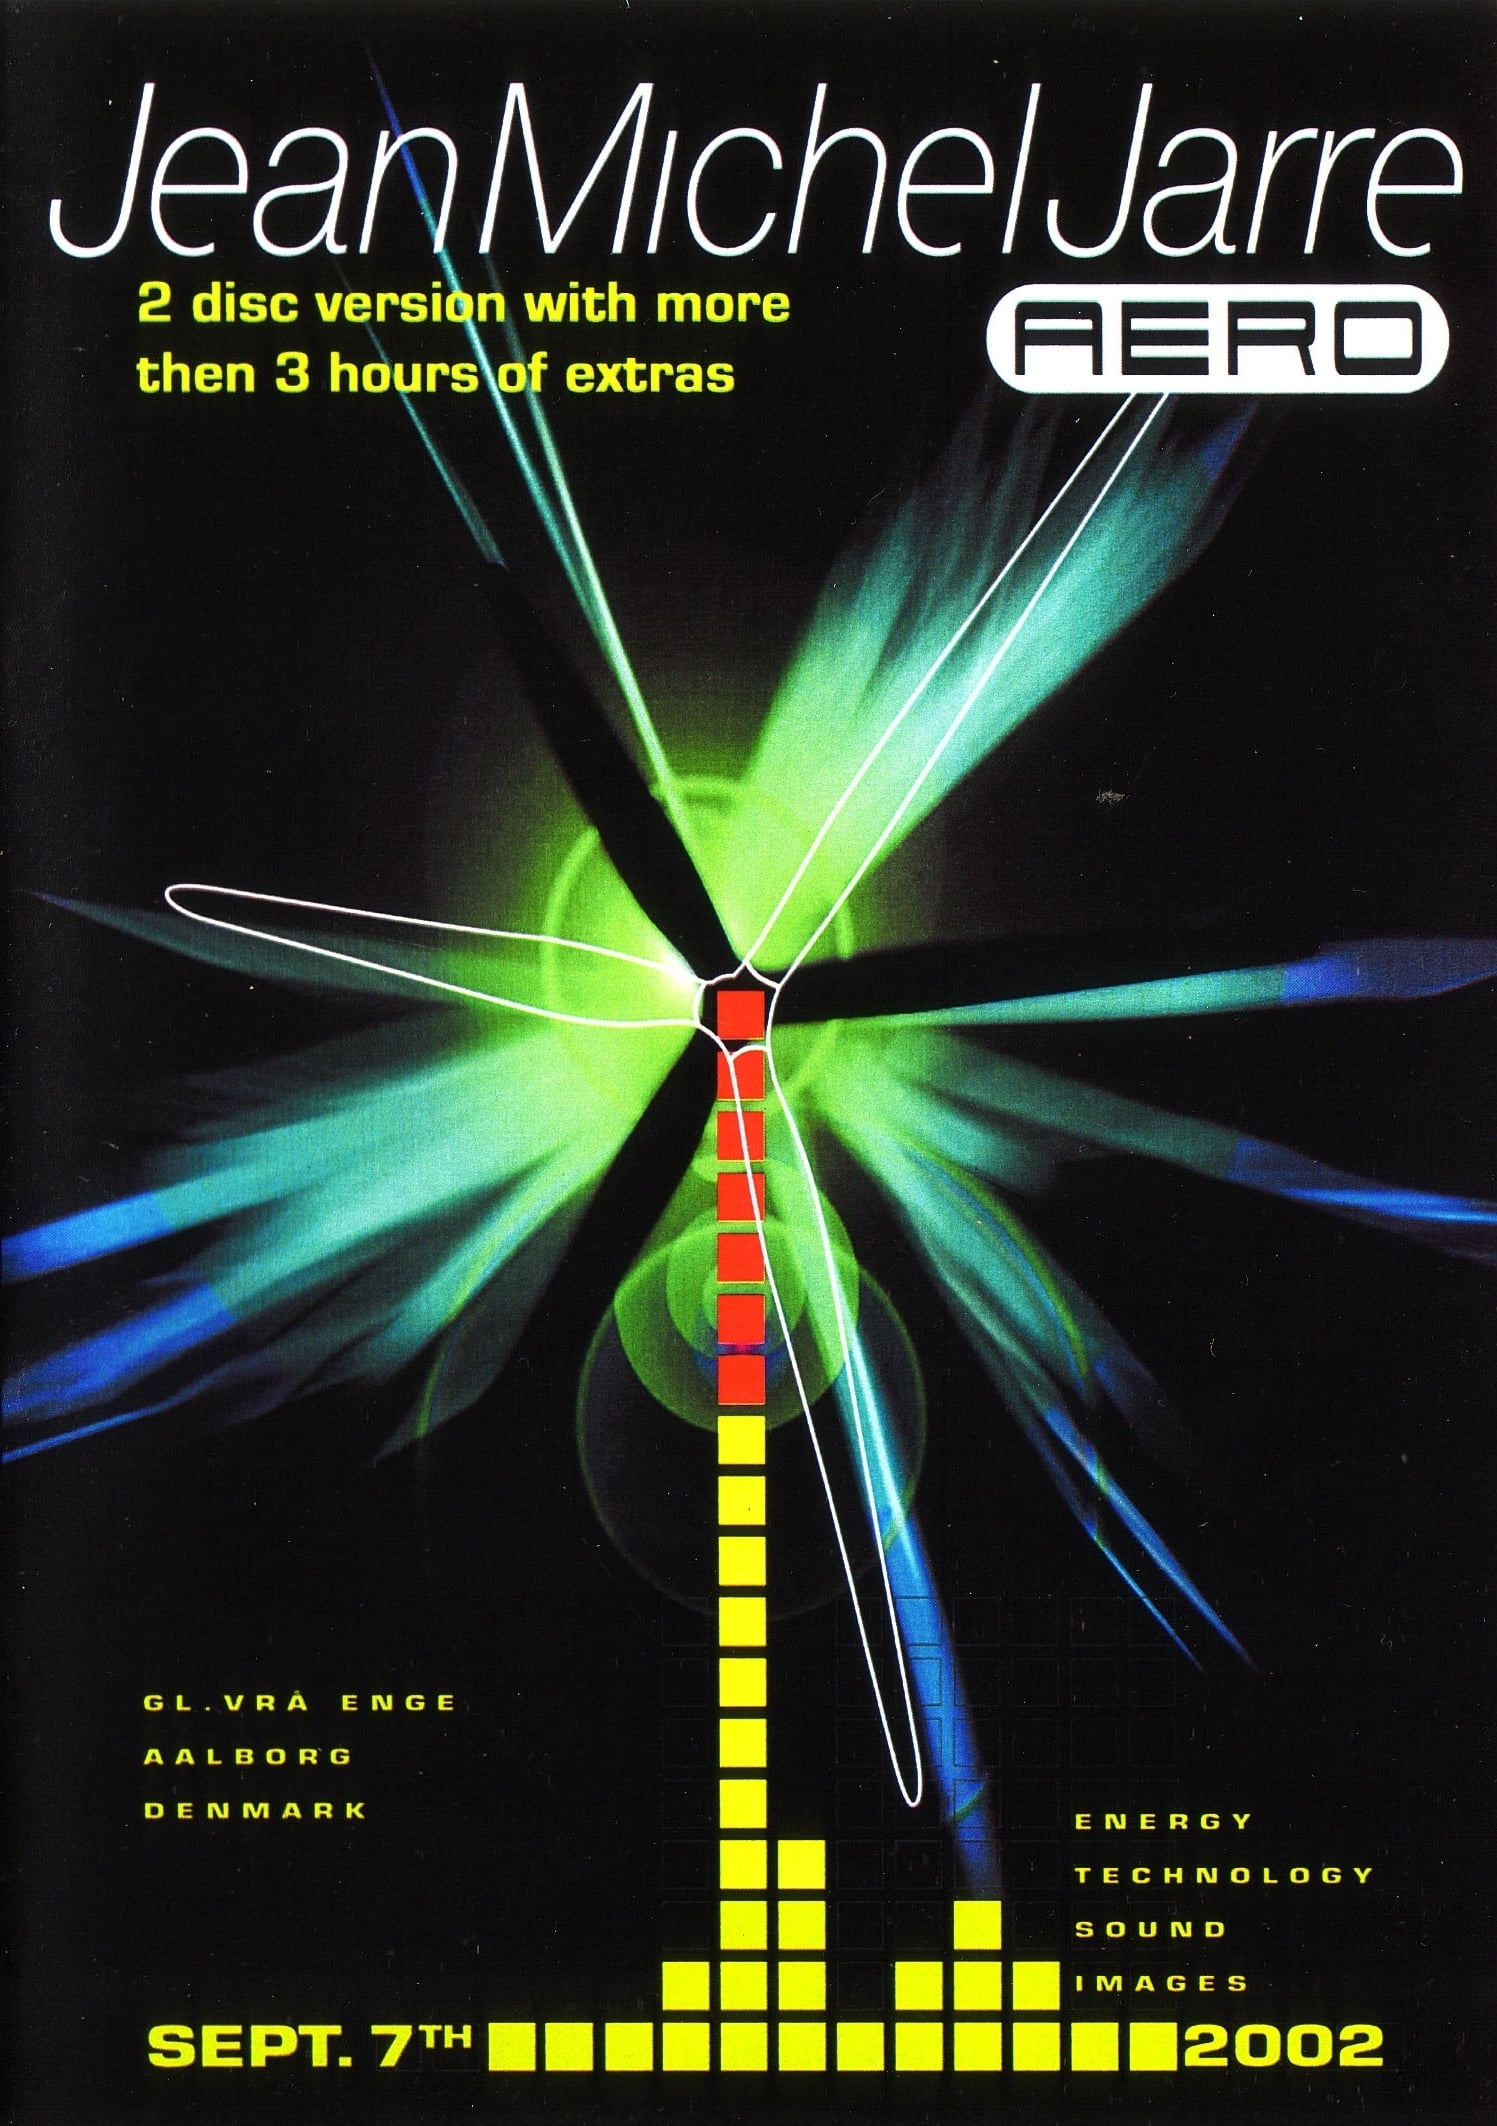 Jean Michel Jarre: AERO - Tribute to the Wind (2002)